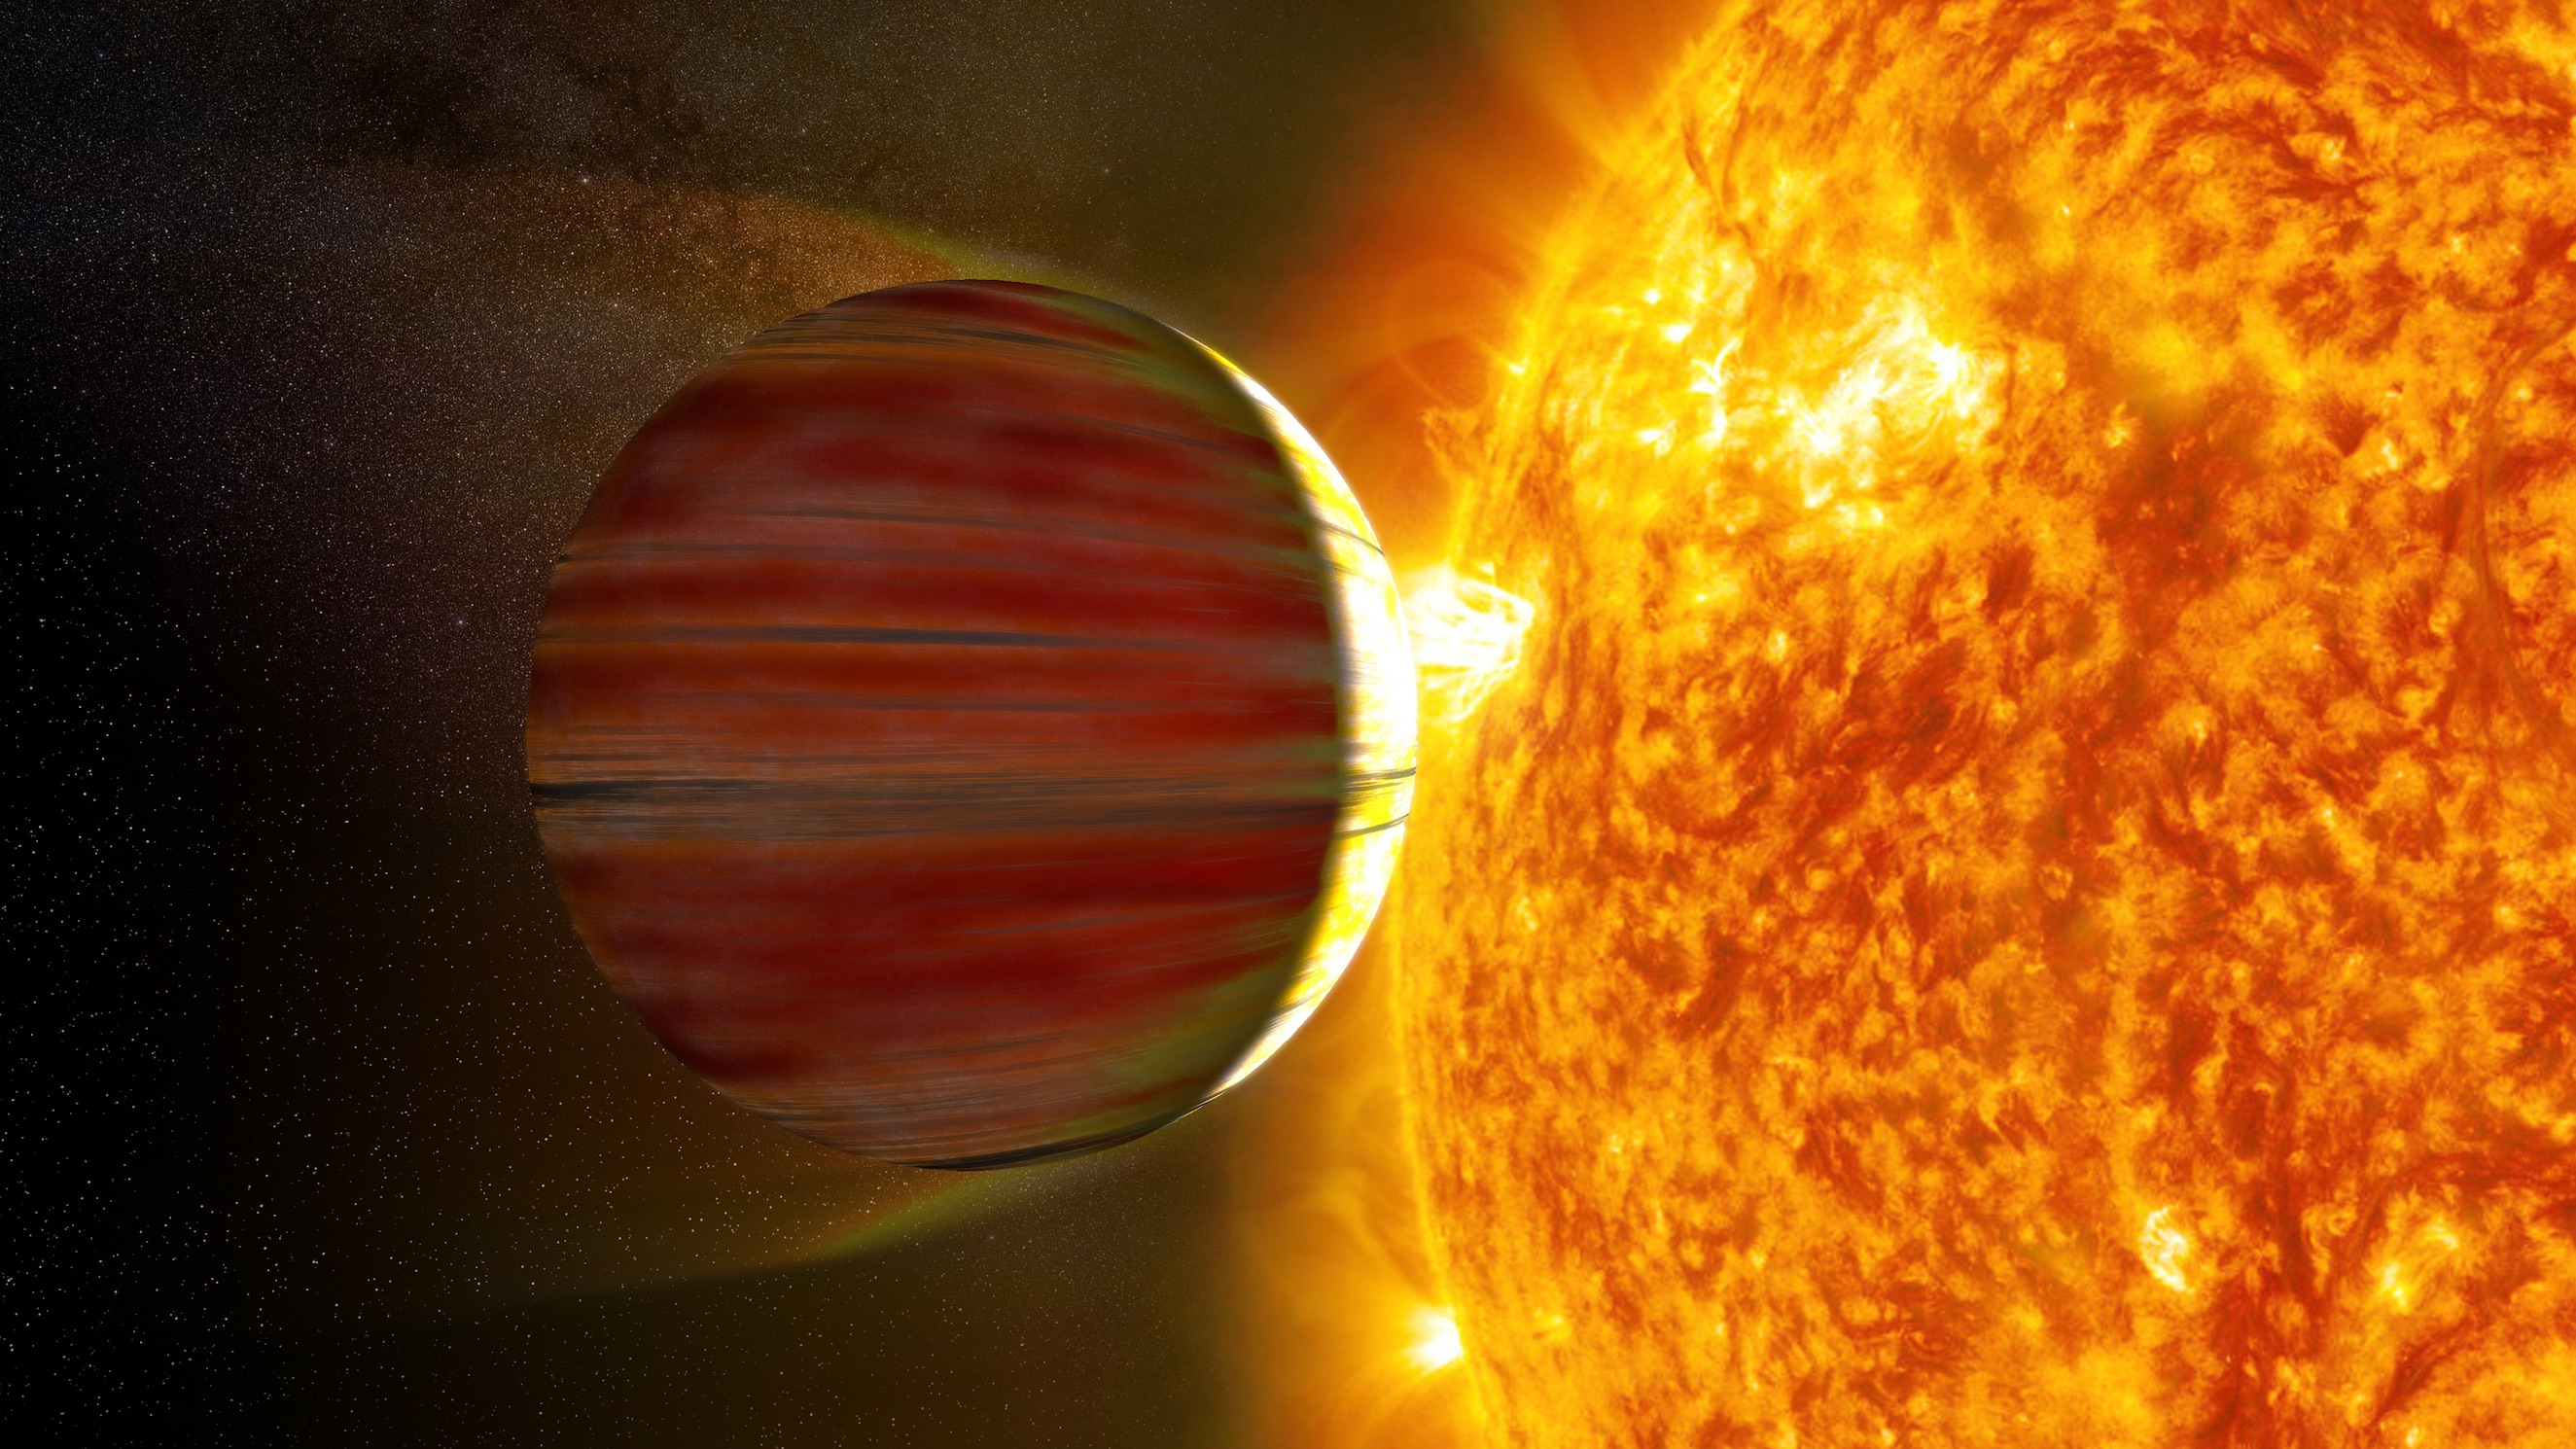 What's the diameter of the largest exoplanet found so far?